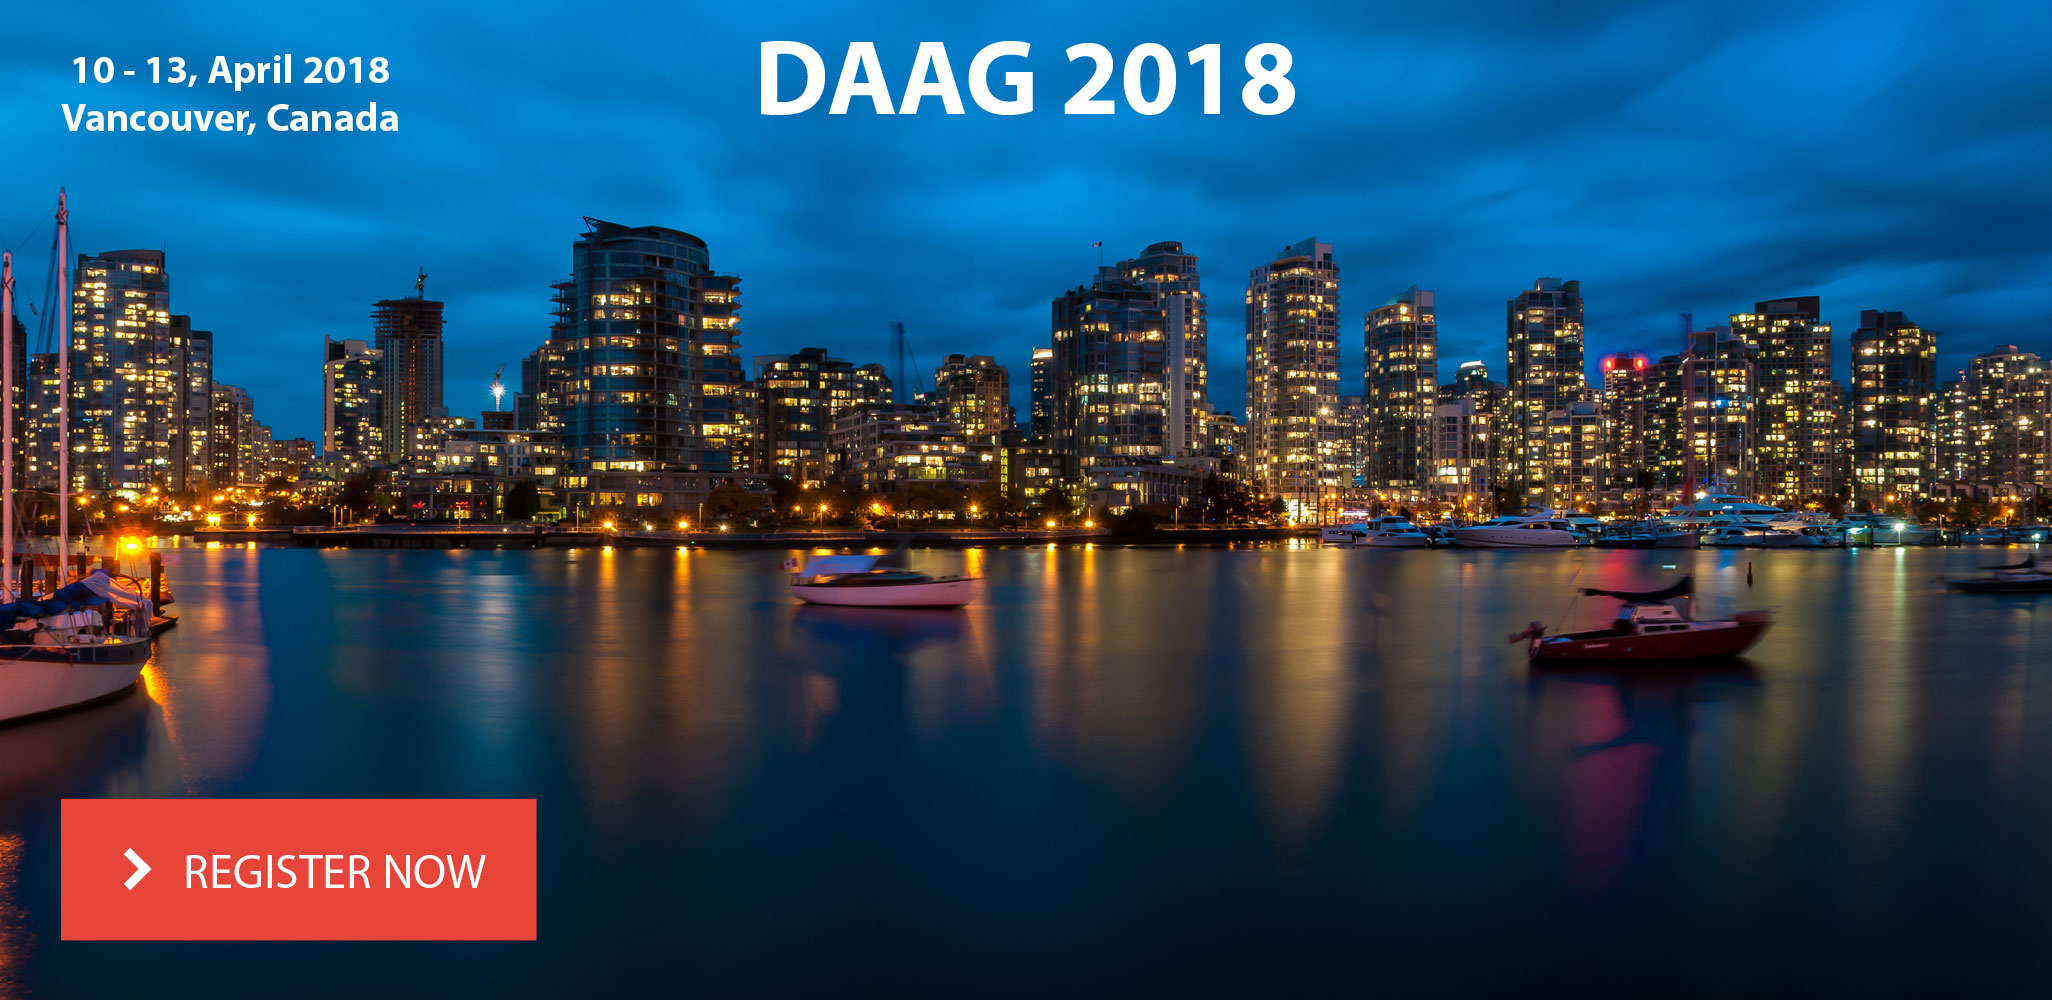 Register for DAAG 2018